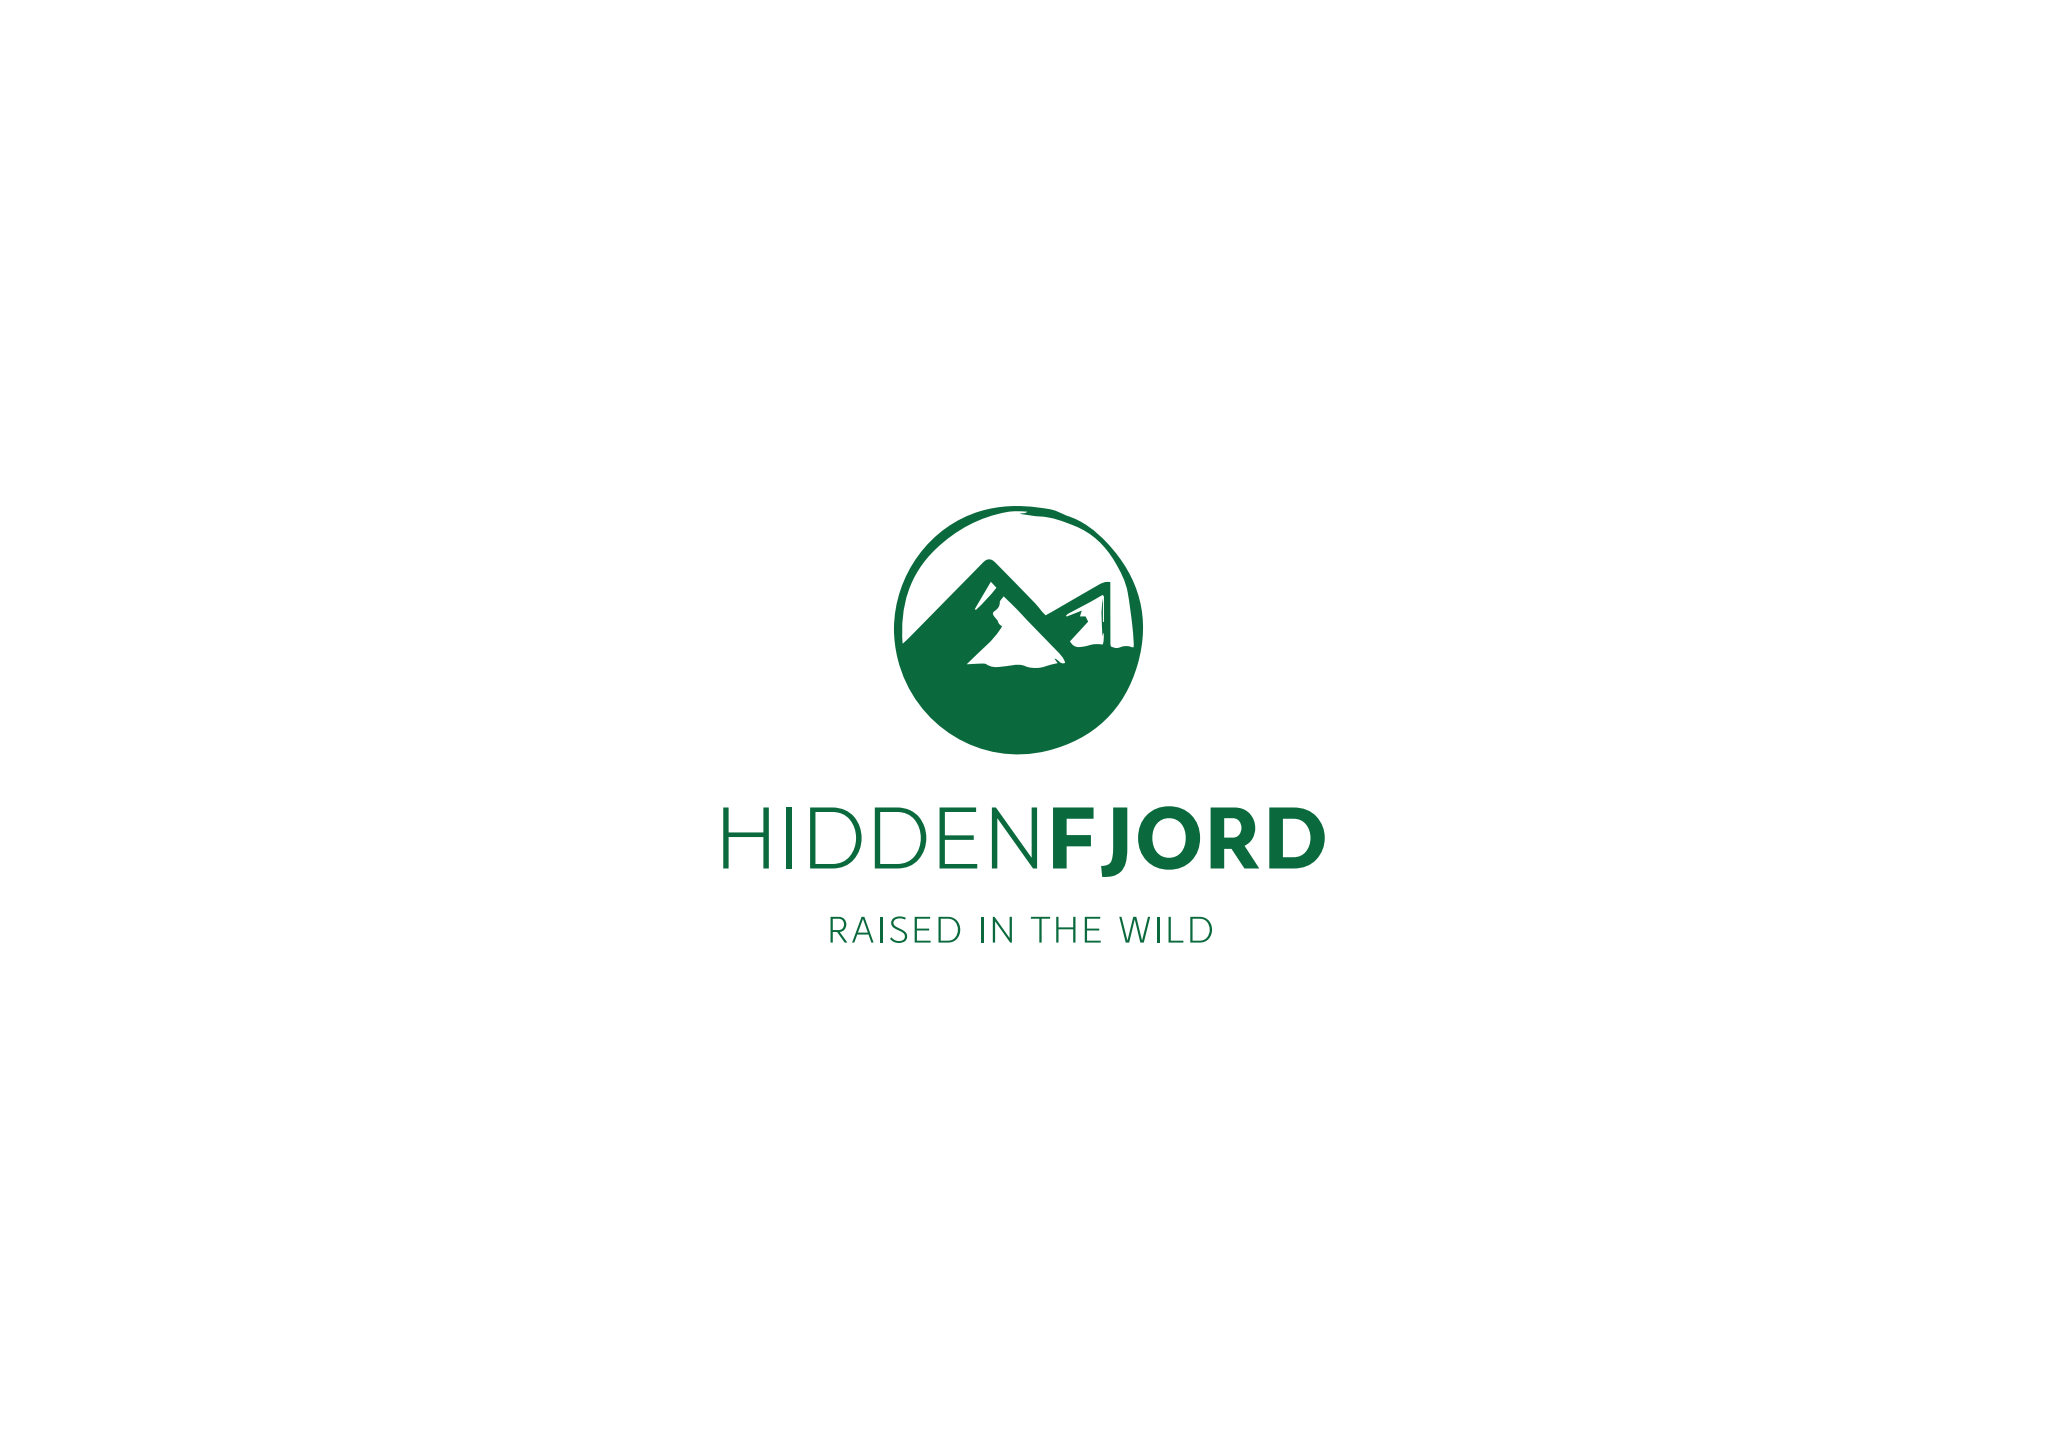 Hiddenfjord logo